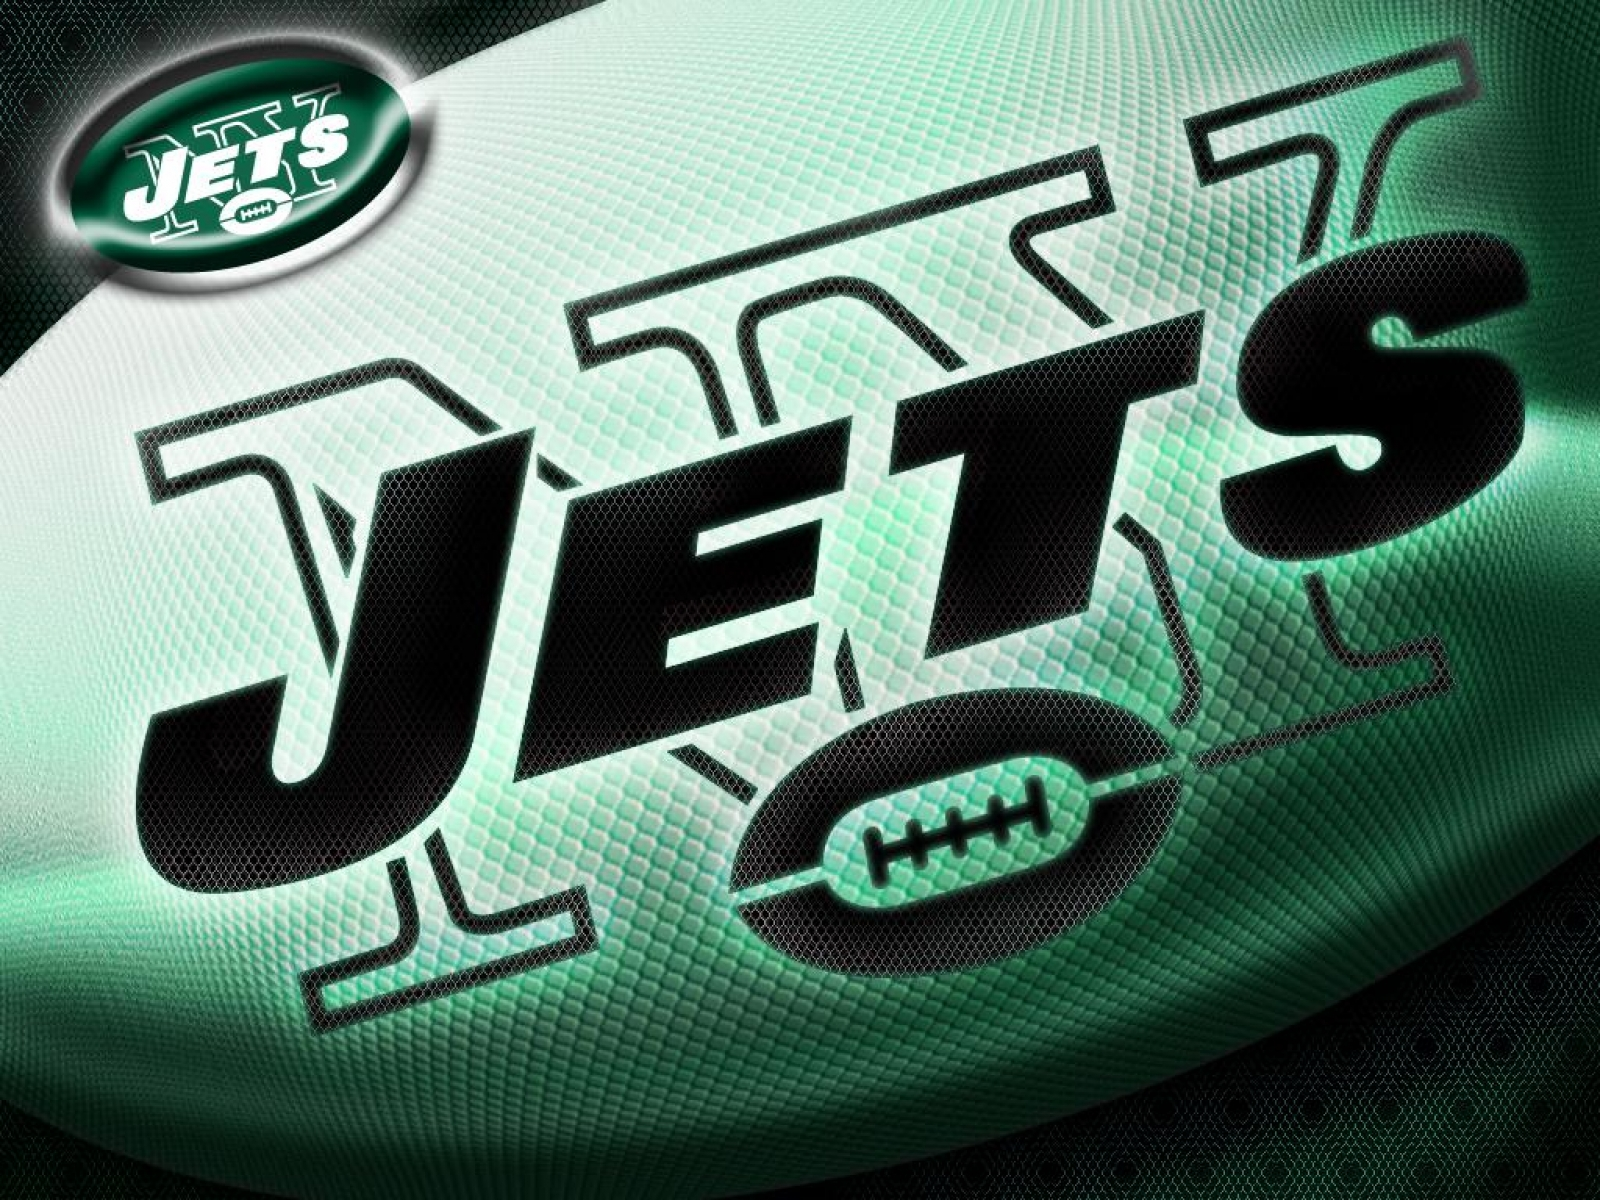 Free New York Jets Wallpaper   New York Jets Wallpapers